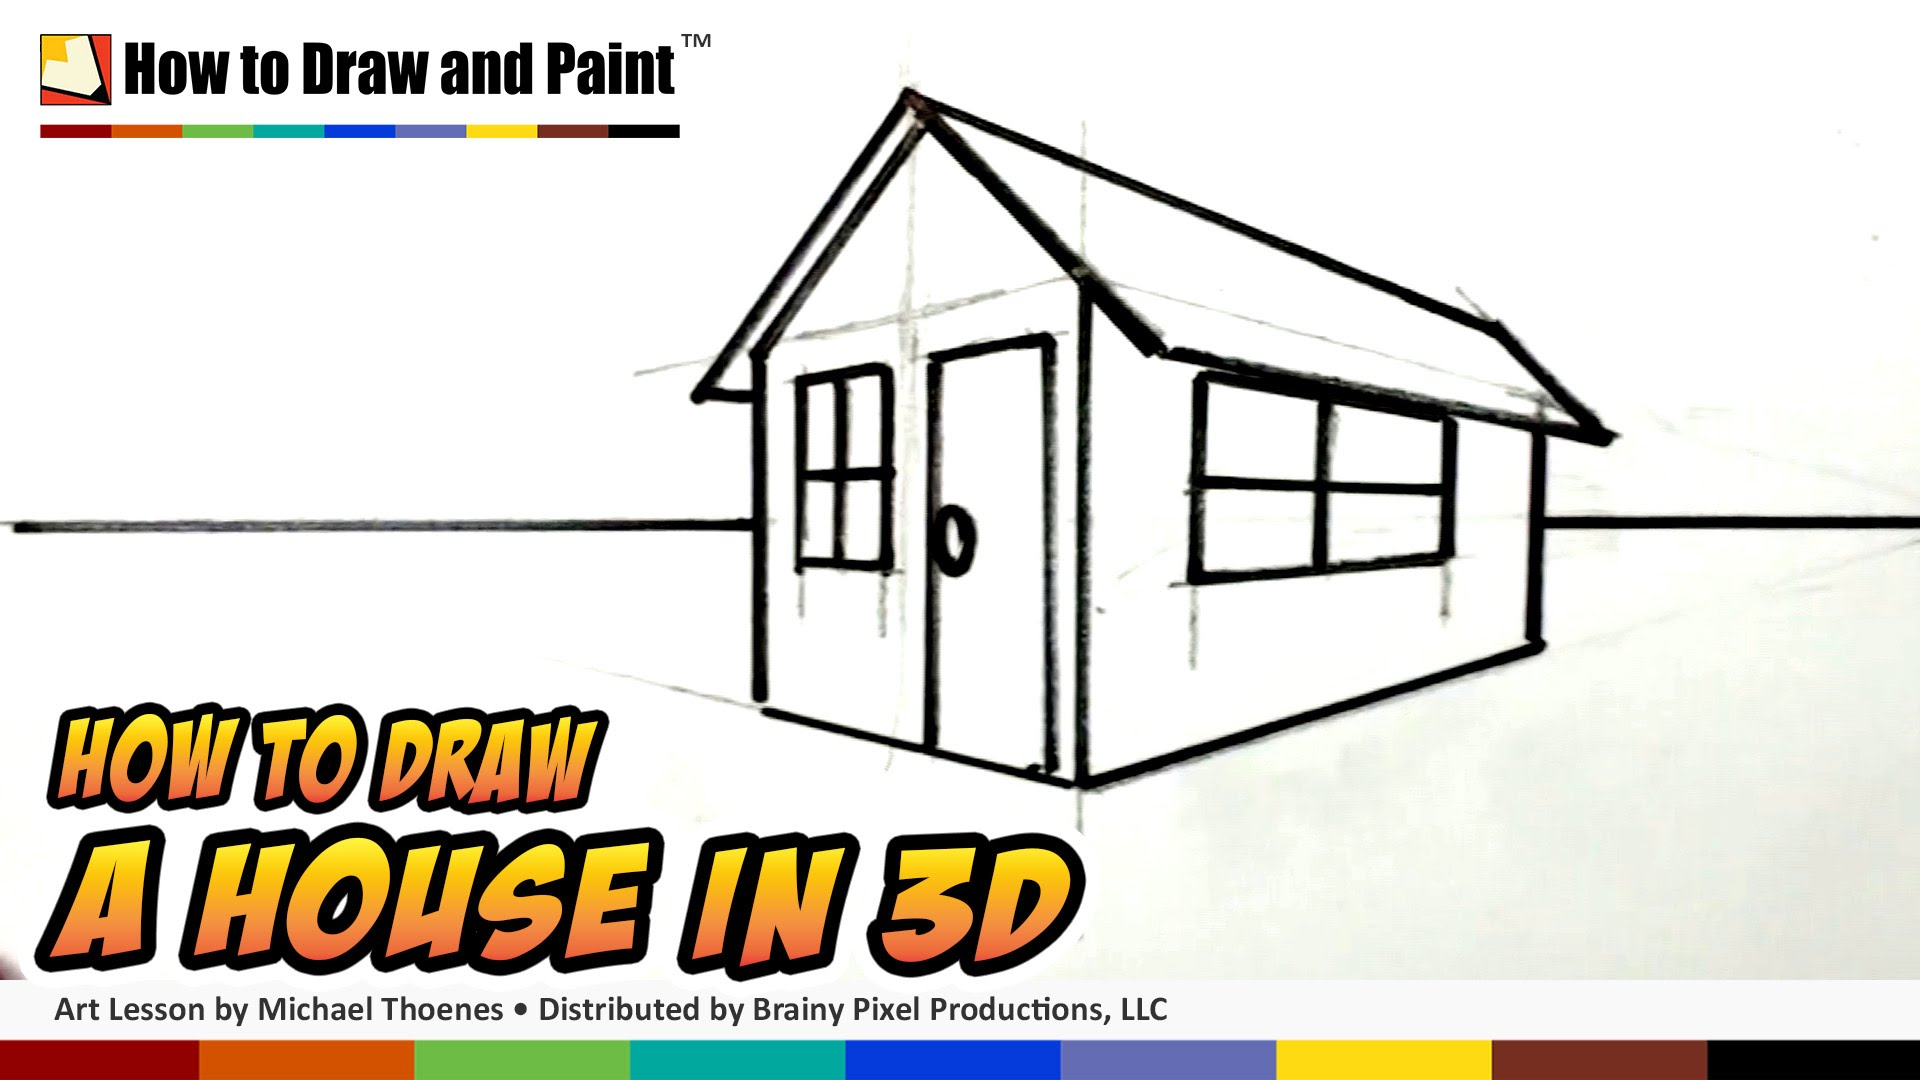 Superb 1920x1080 How To Draw A House In 3D For Kids